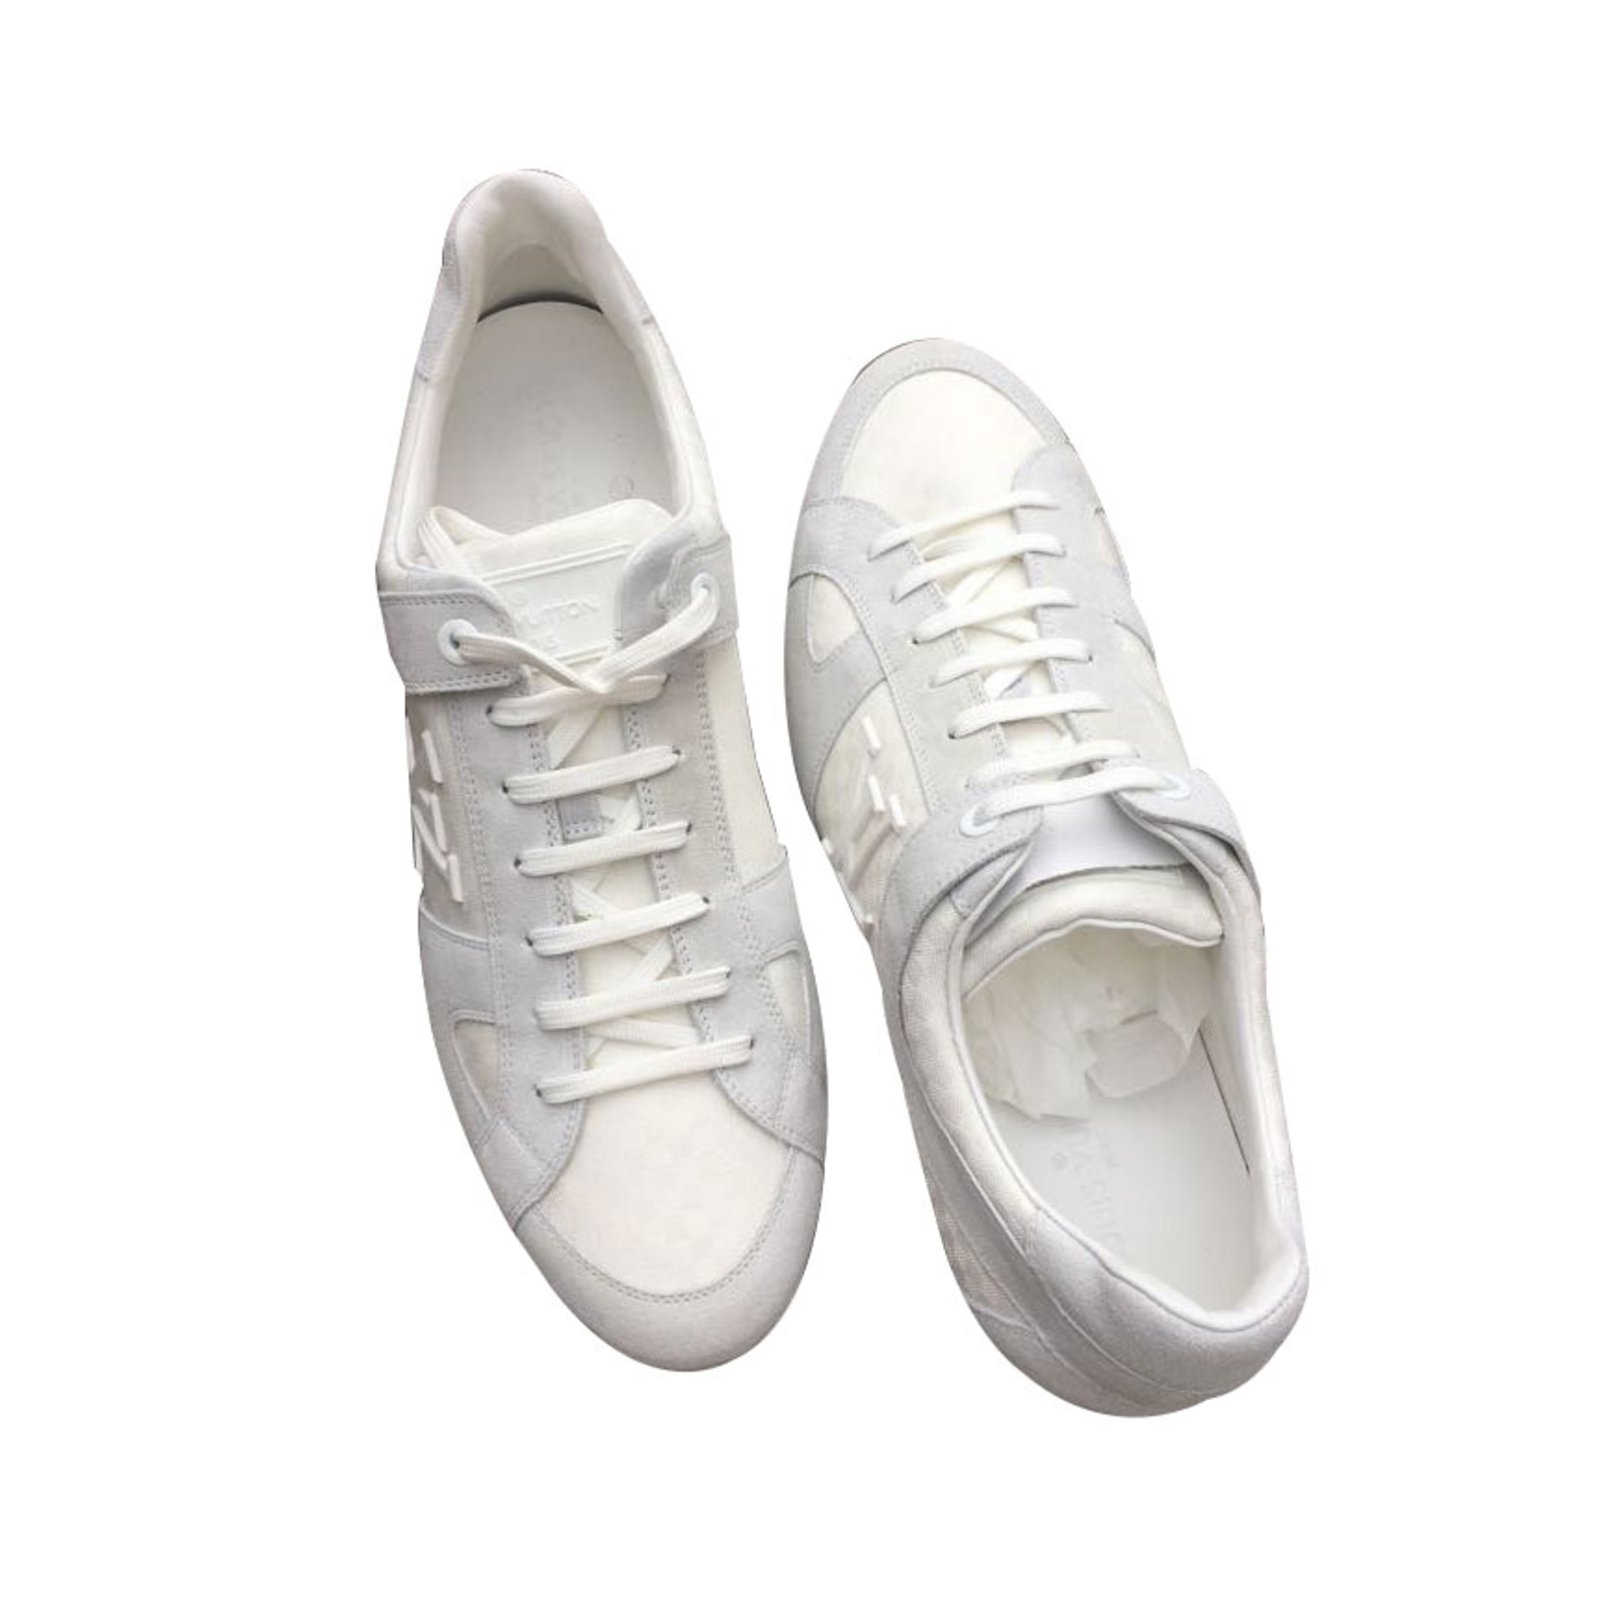 Baskets Homme Louis Vuitton Sneakers Blancs Daim Blanc Ref